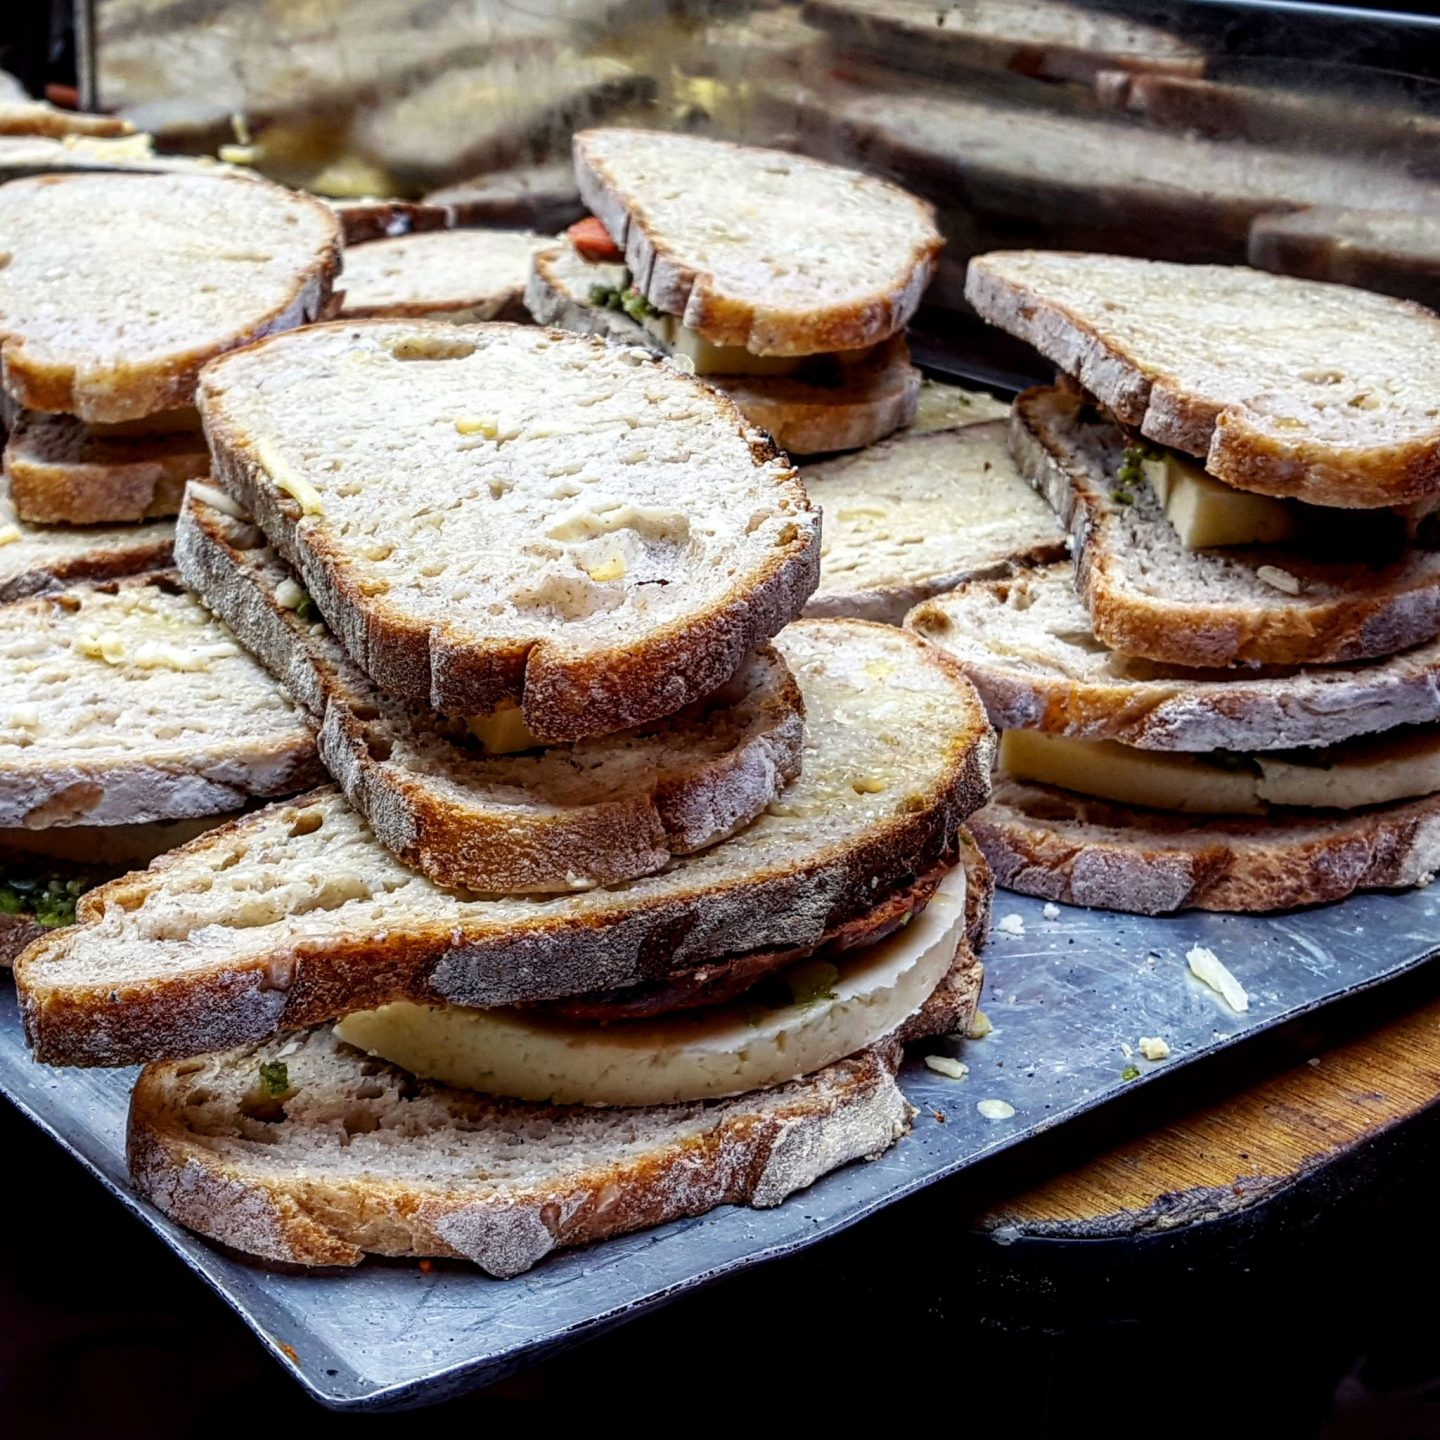 Maltby Street Market, The Cheese Truck, Cheese Toastie